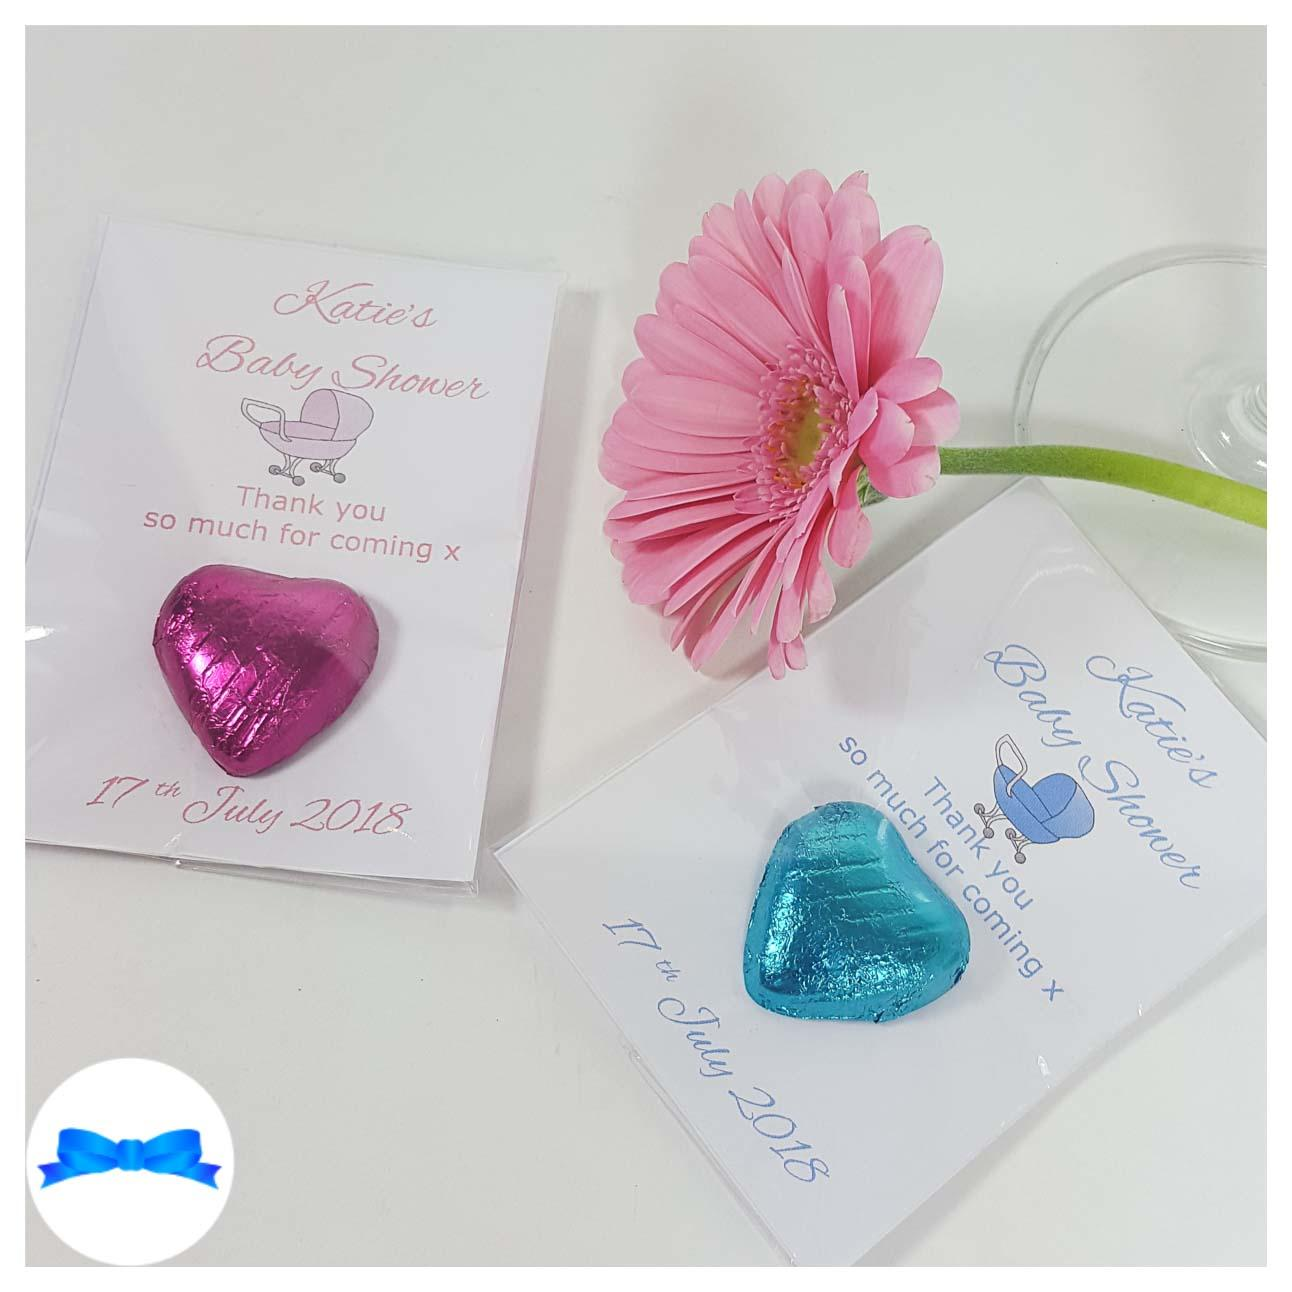 Baby shower chocolate heart favours with pink and blue prams